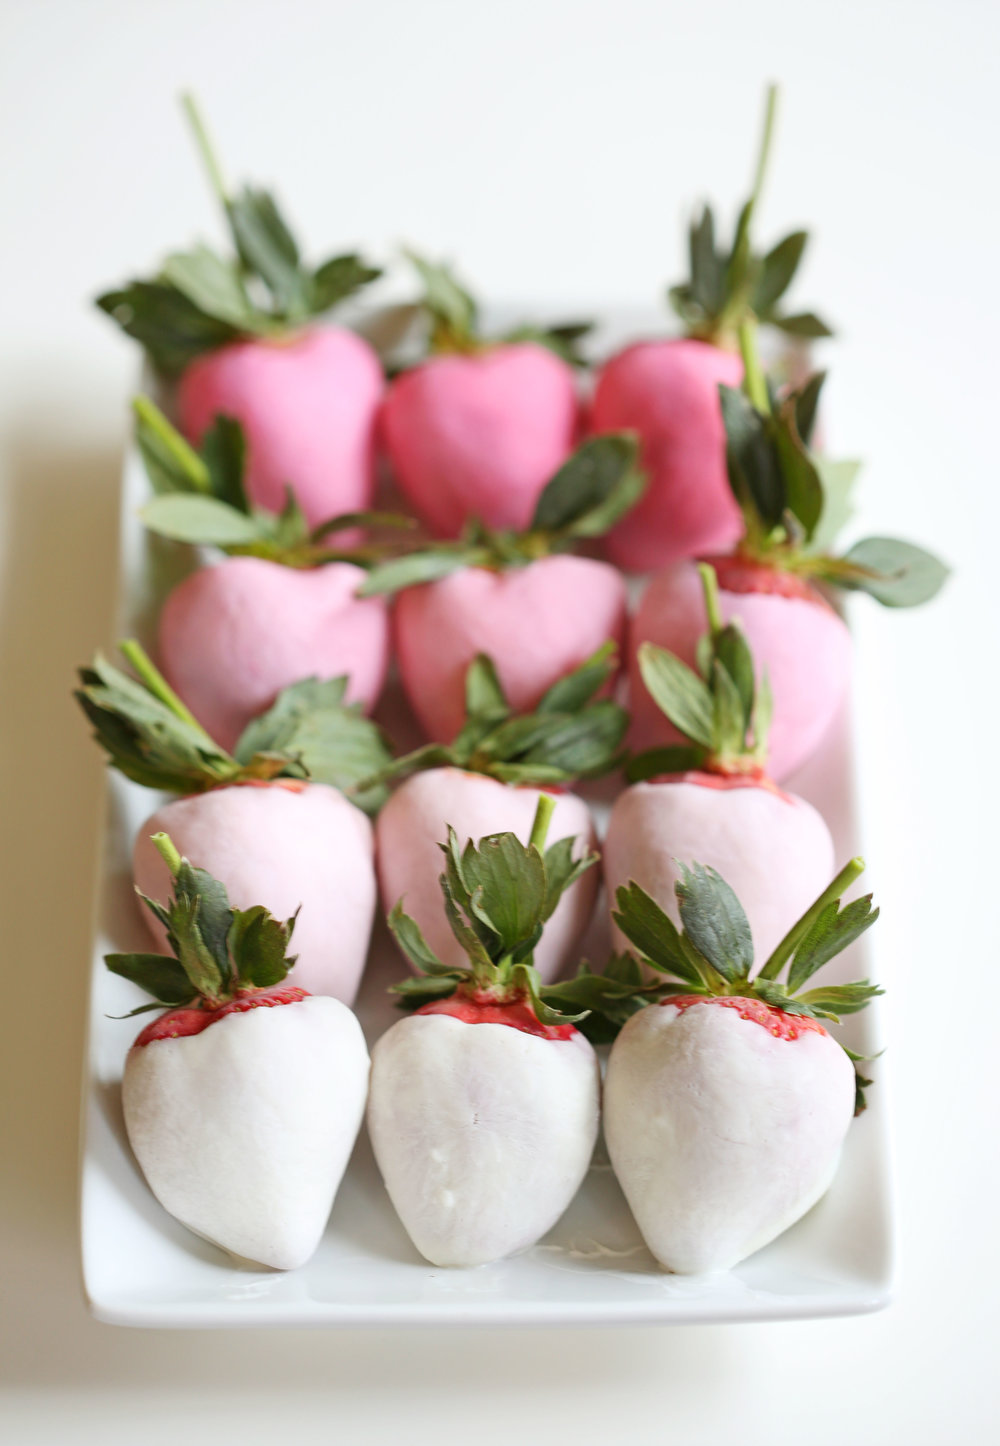 Yogurt Dipped Ombre Strawberries from Eat Yourself Skinny. Get the recipe here. -